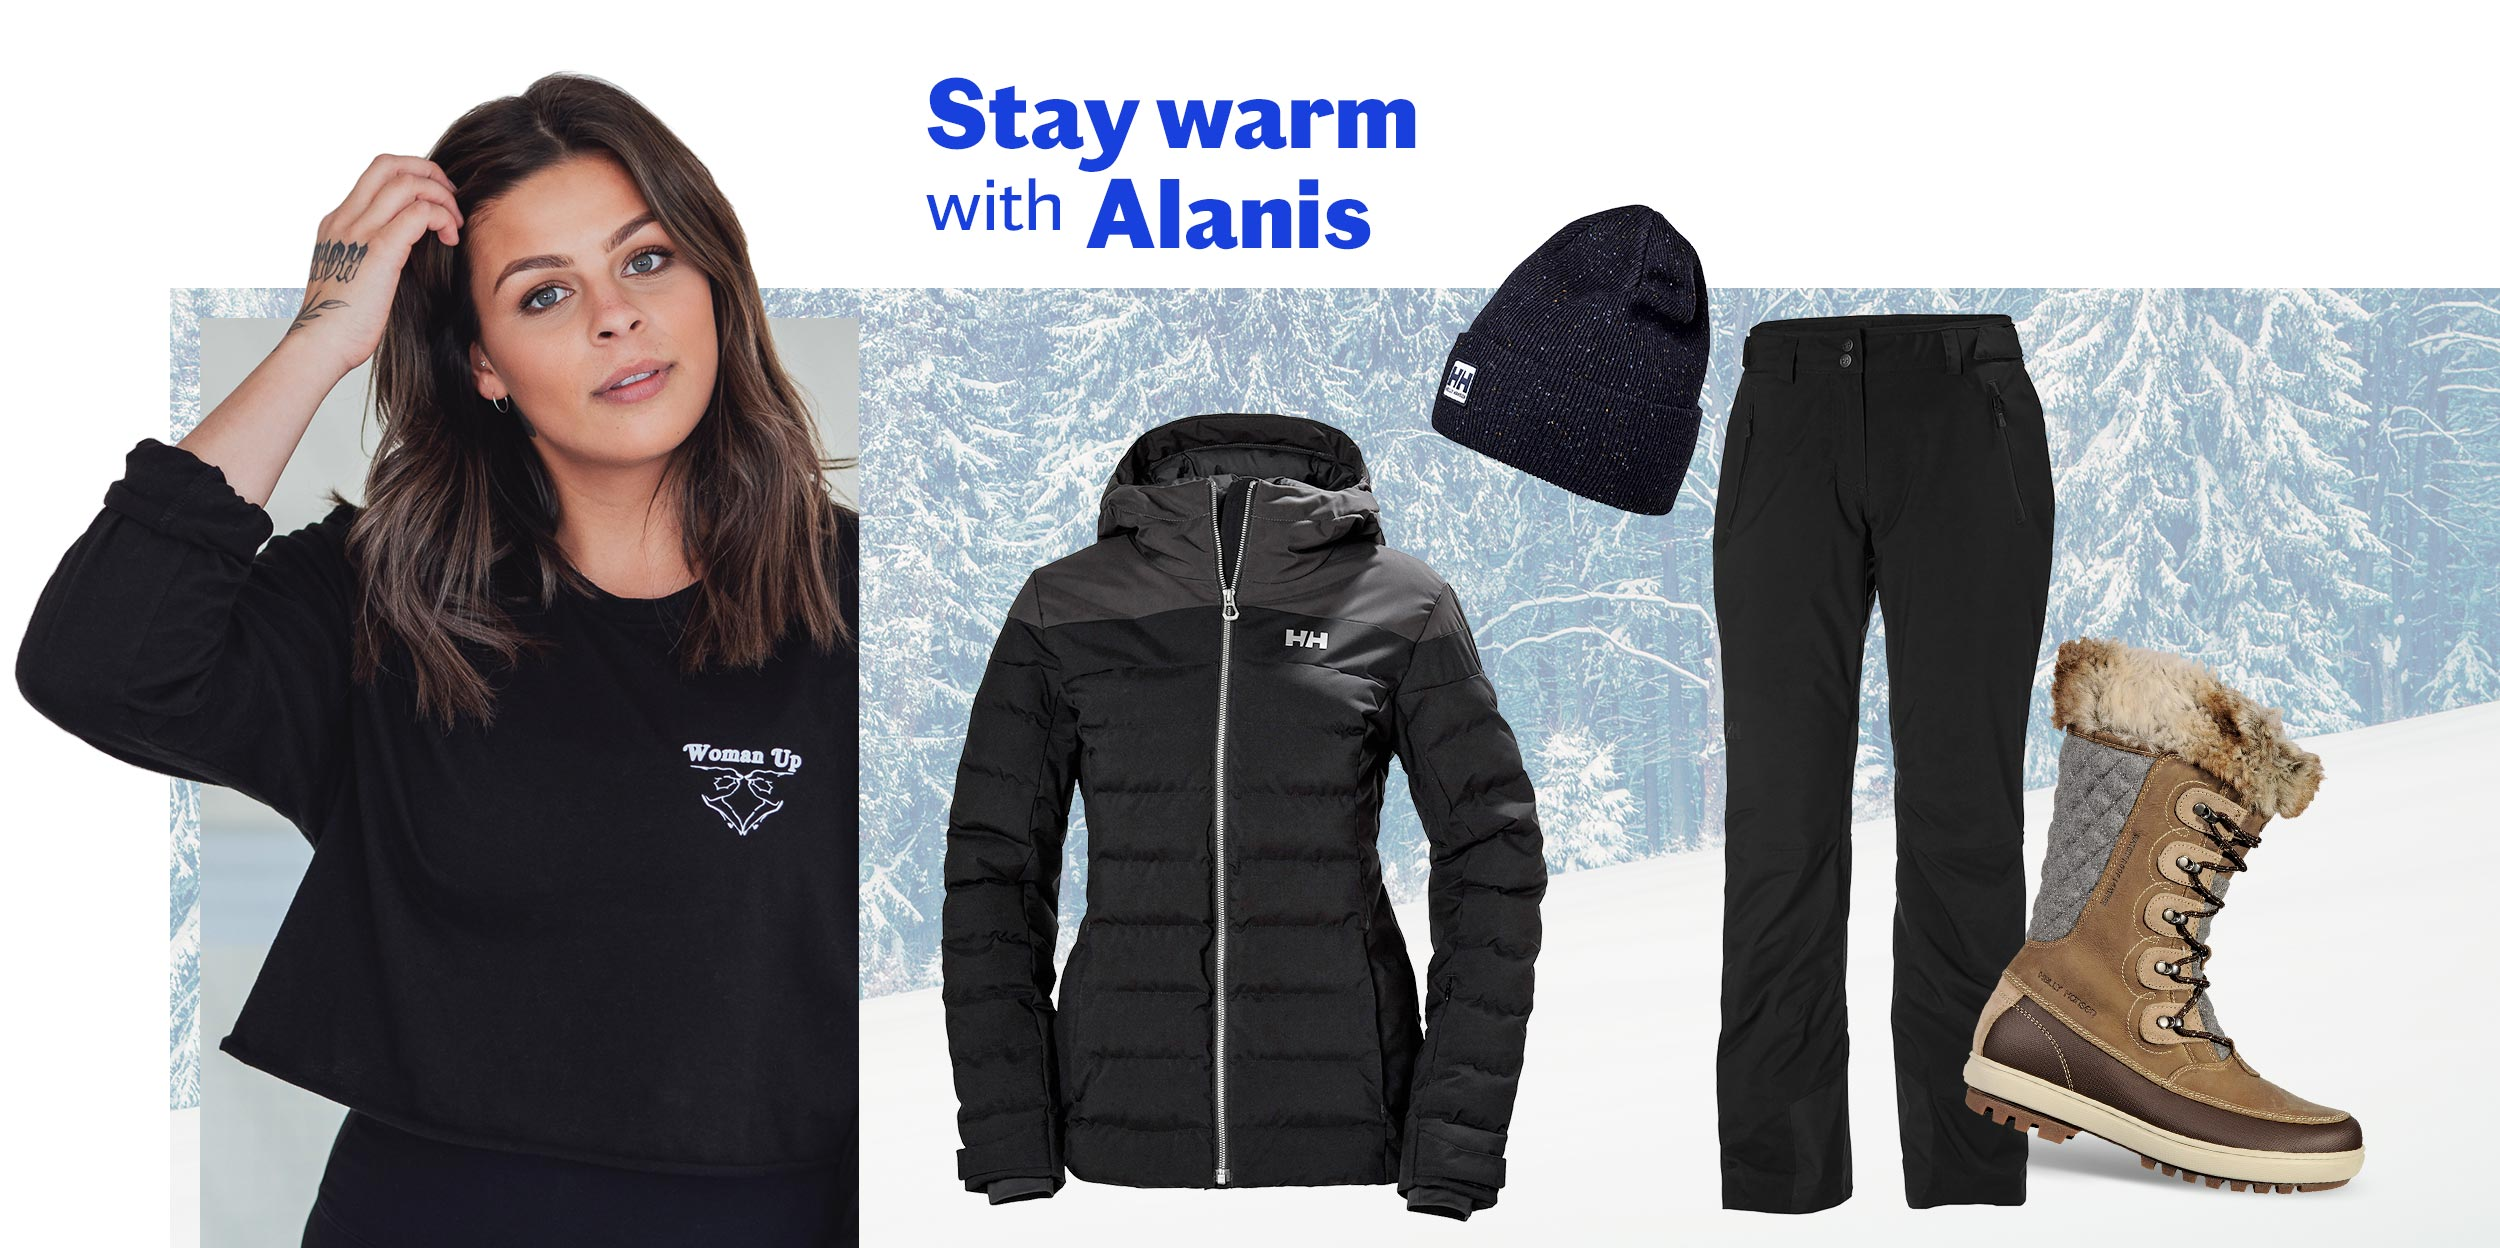 Stay warm with Alanis - Sports Experts influencer